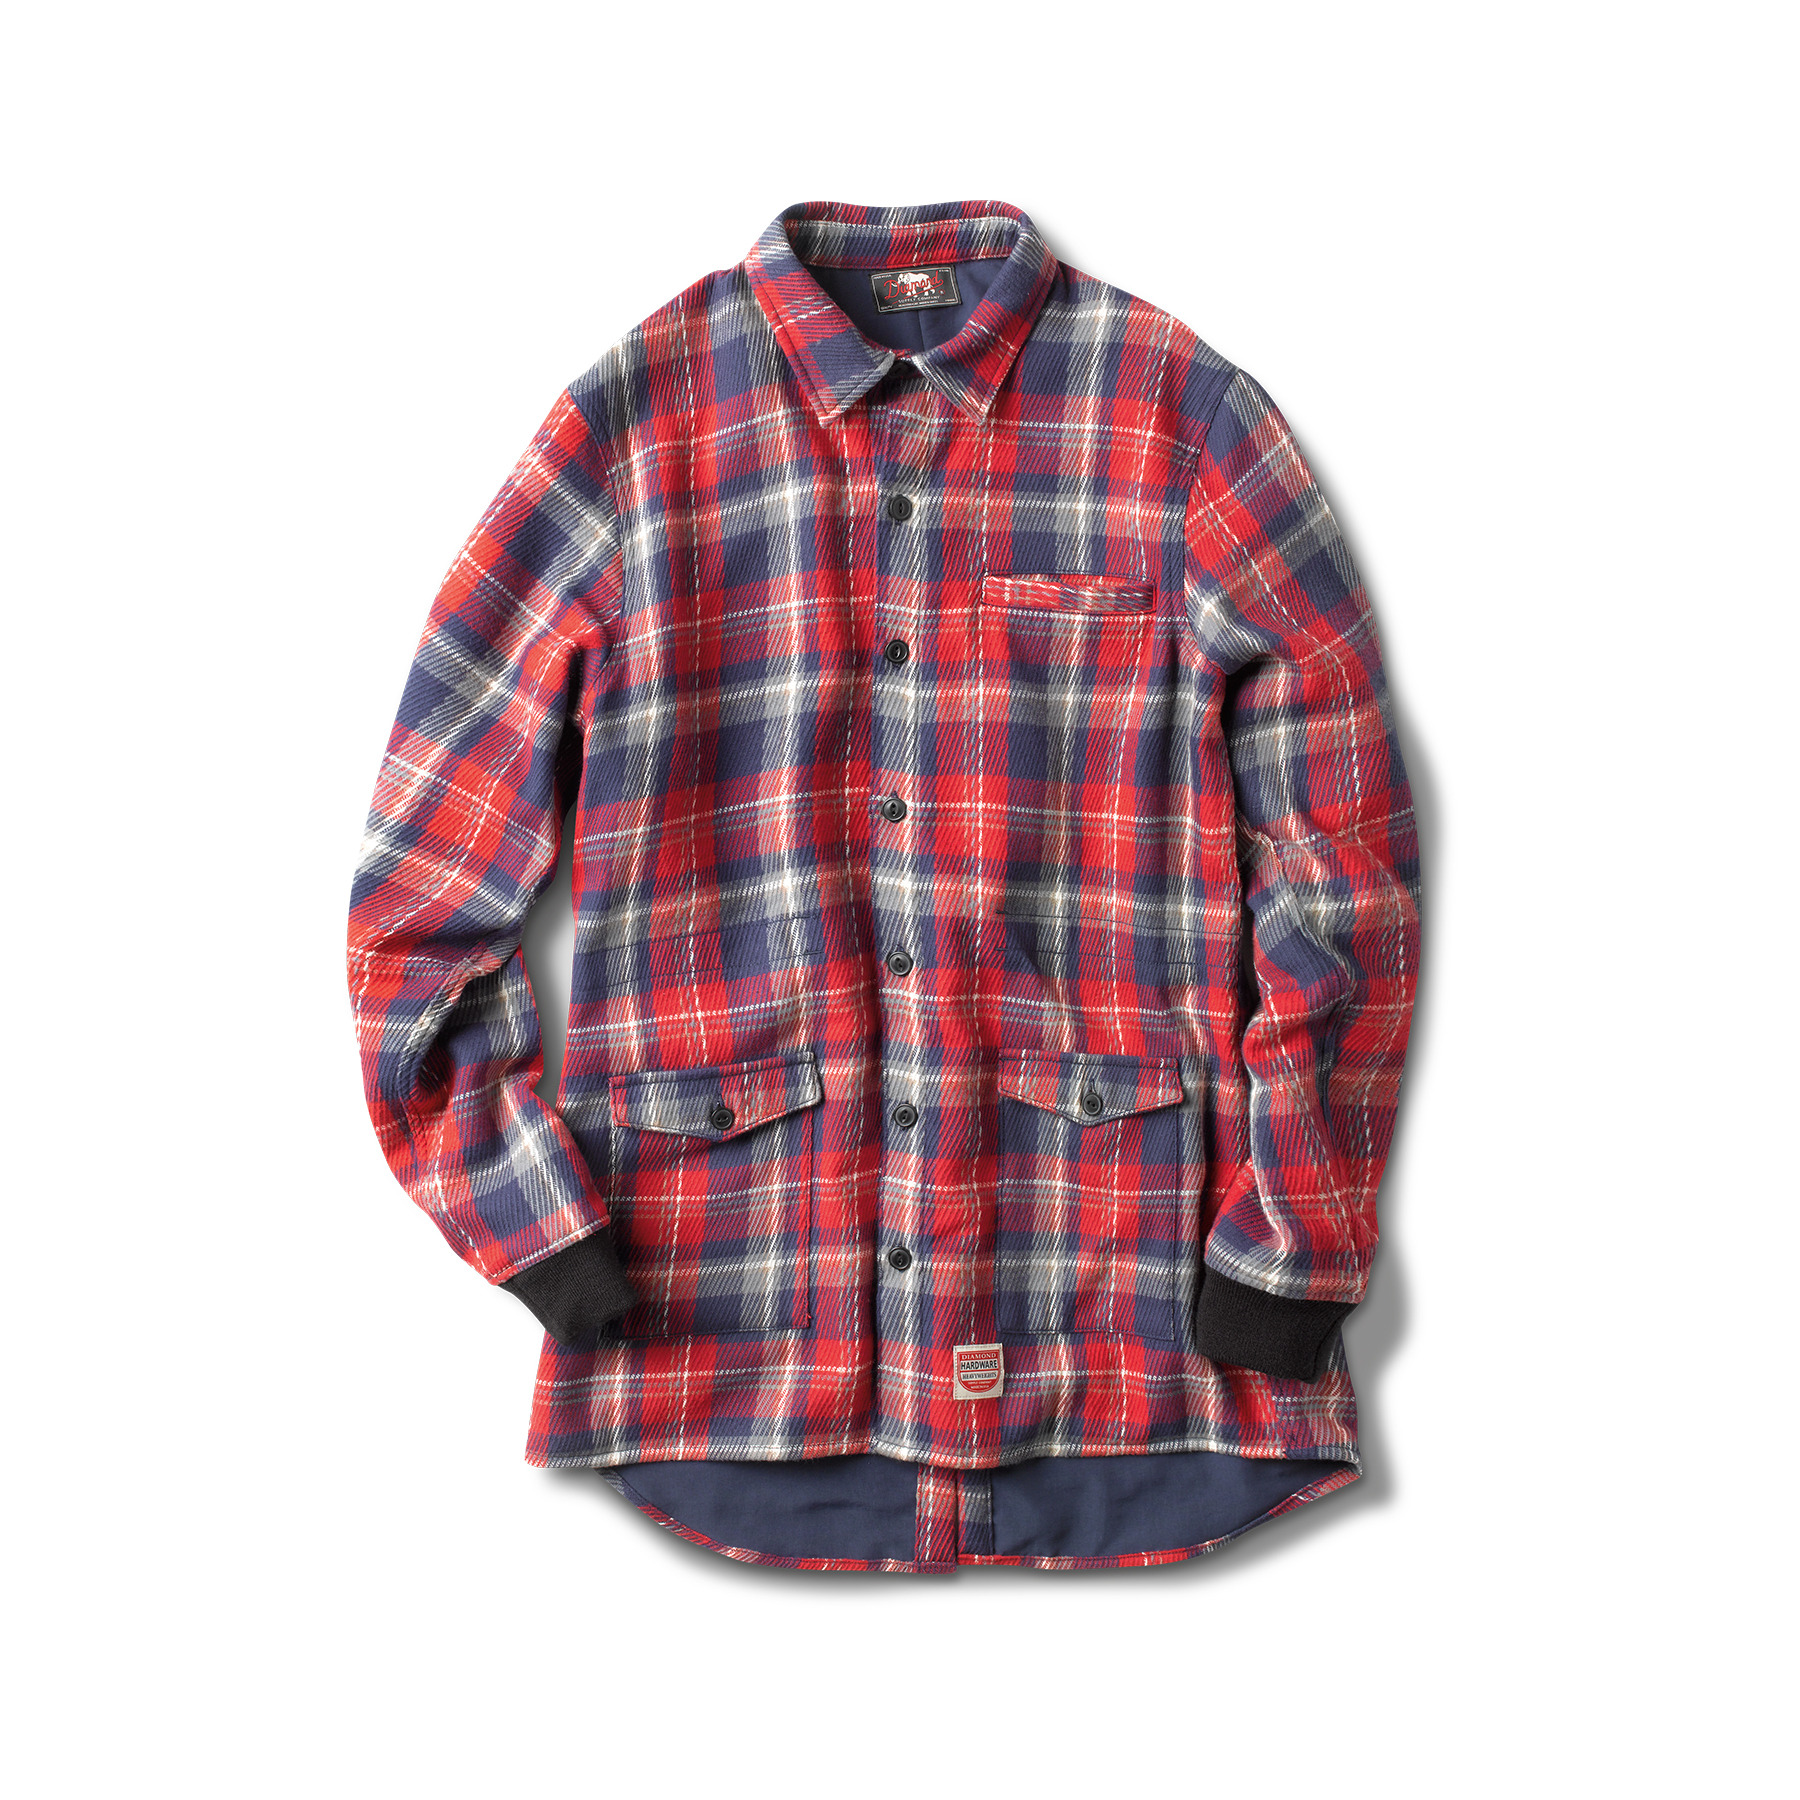 hol_2_cutnsew__0014_woven_plaid_shirt_jacket_red.jpg